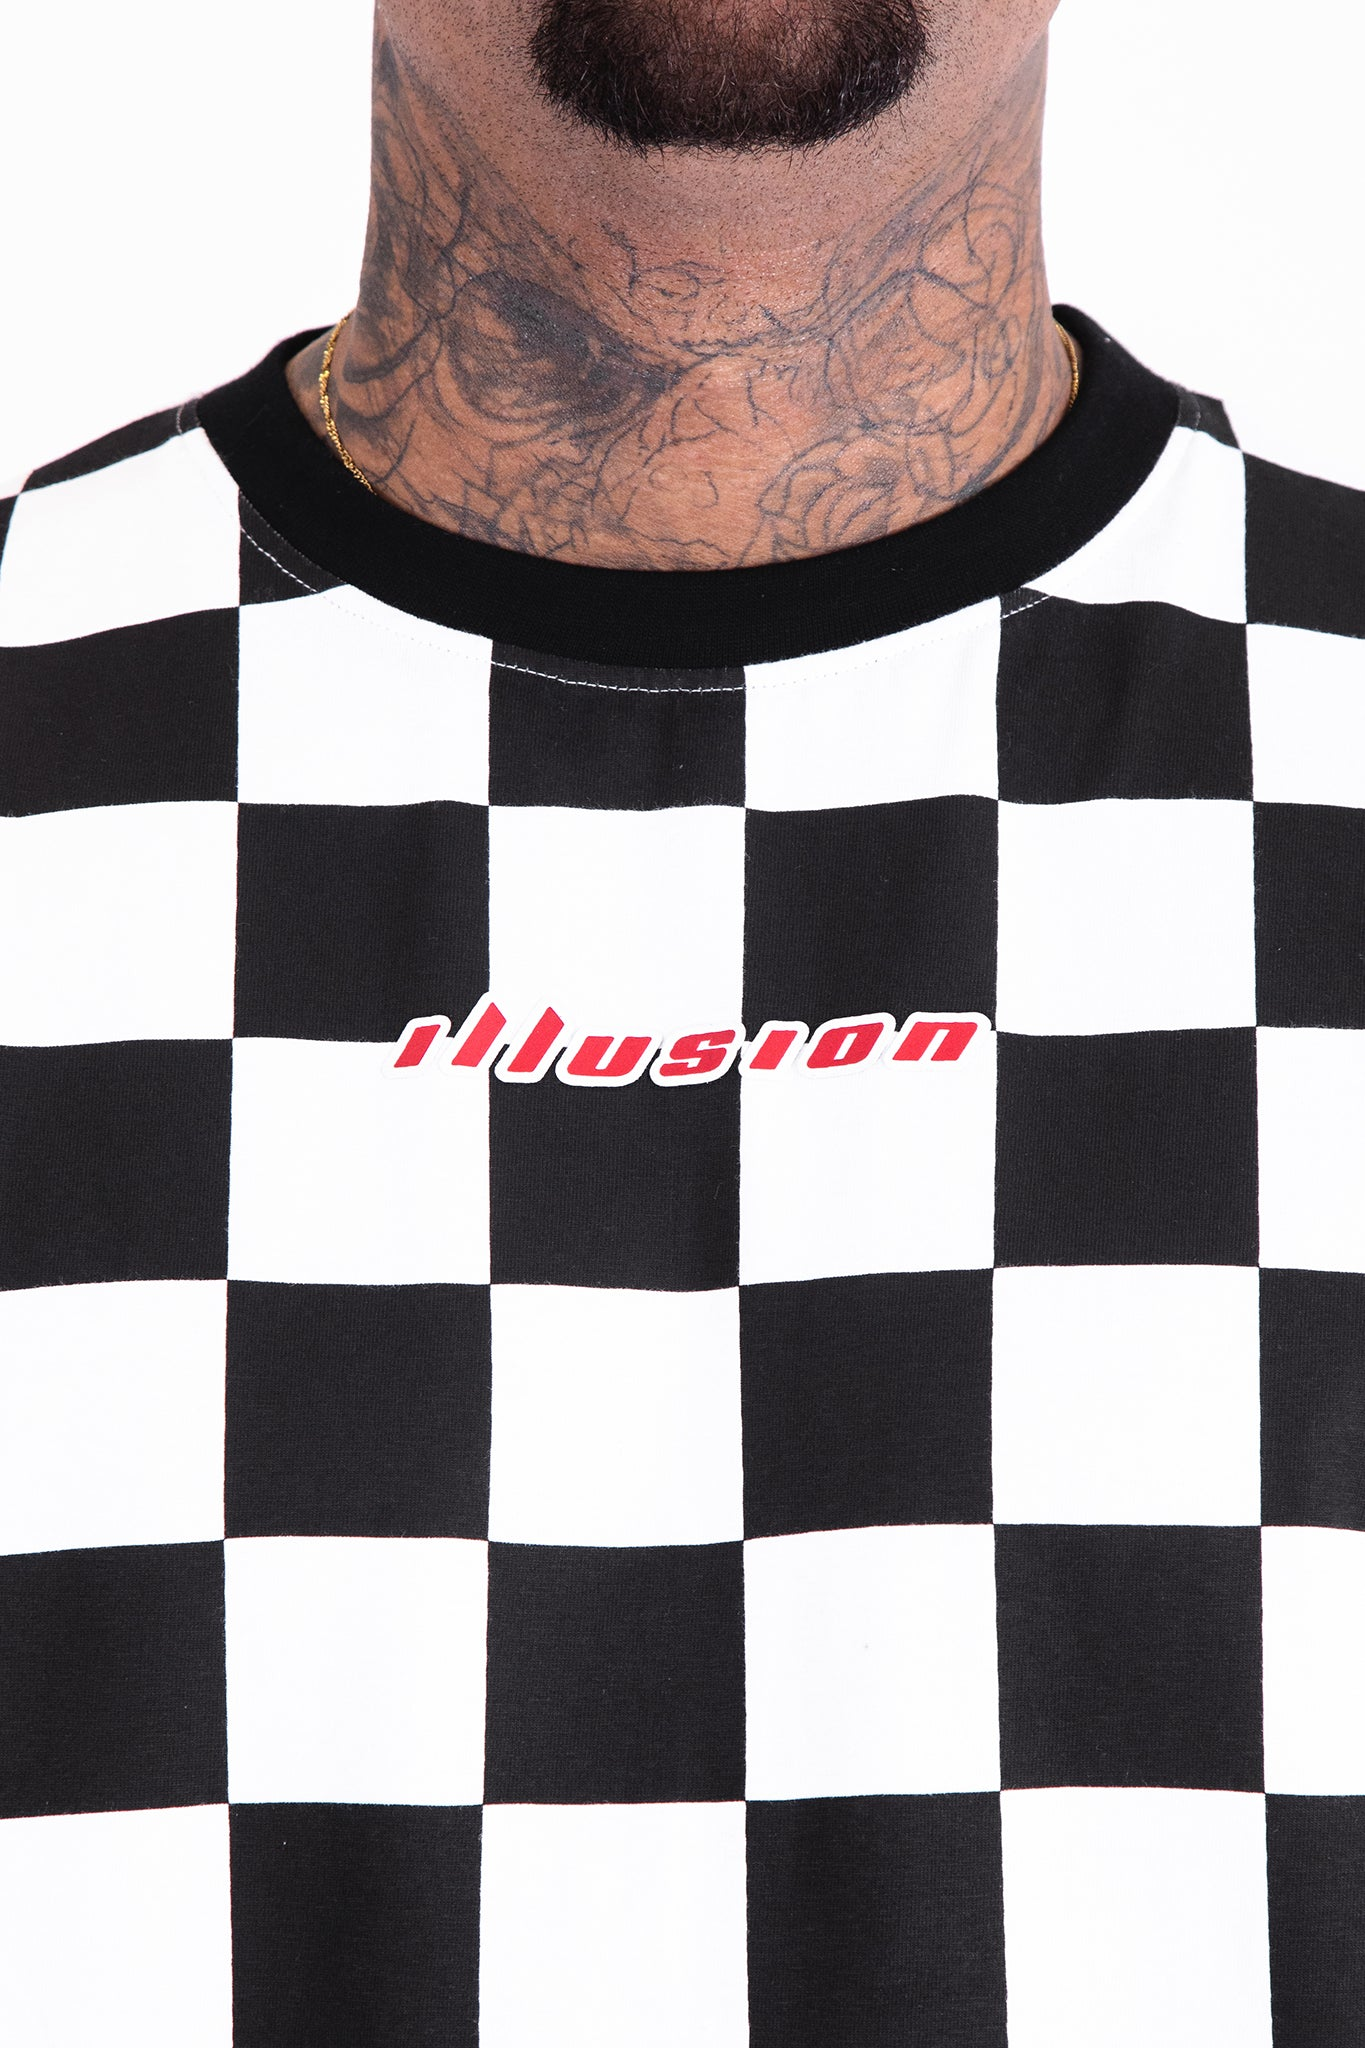 Checkered Tee - Illusion Attire